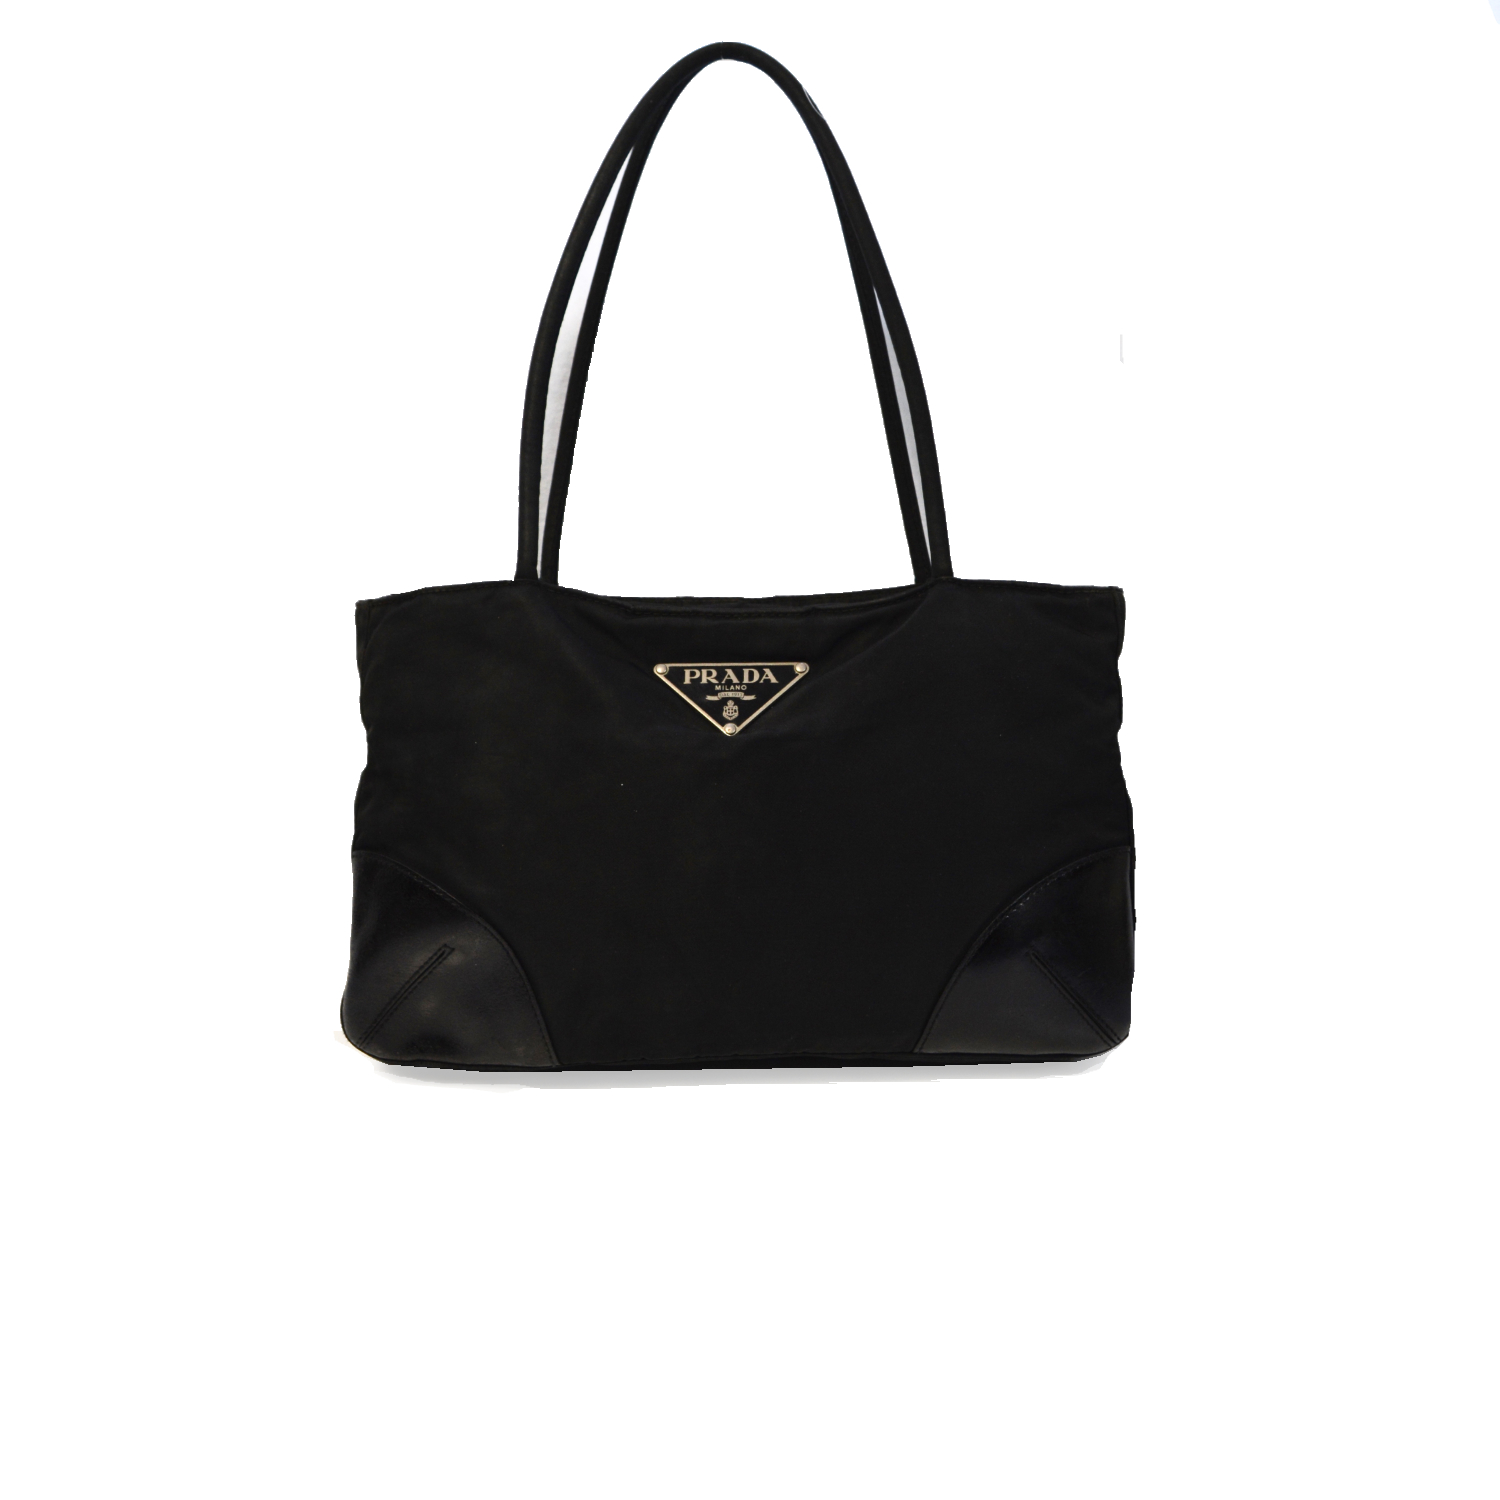 Vintage Prada Nylon Shoulder Mini Tote Bag in Black | NITRYL